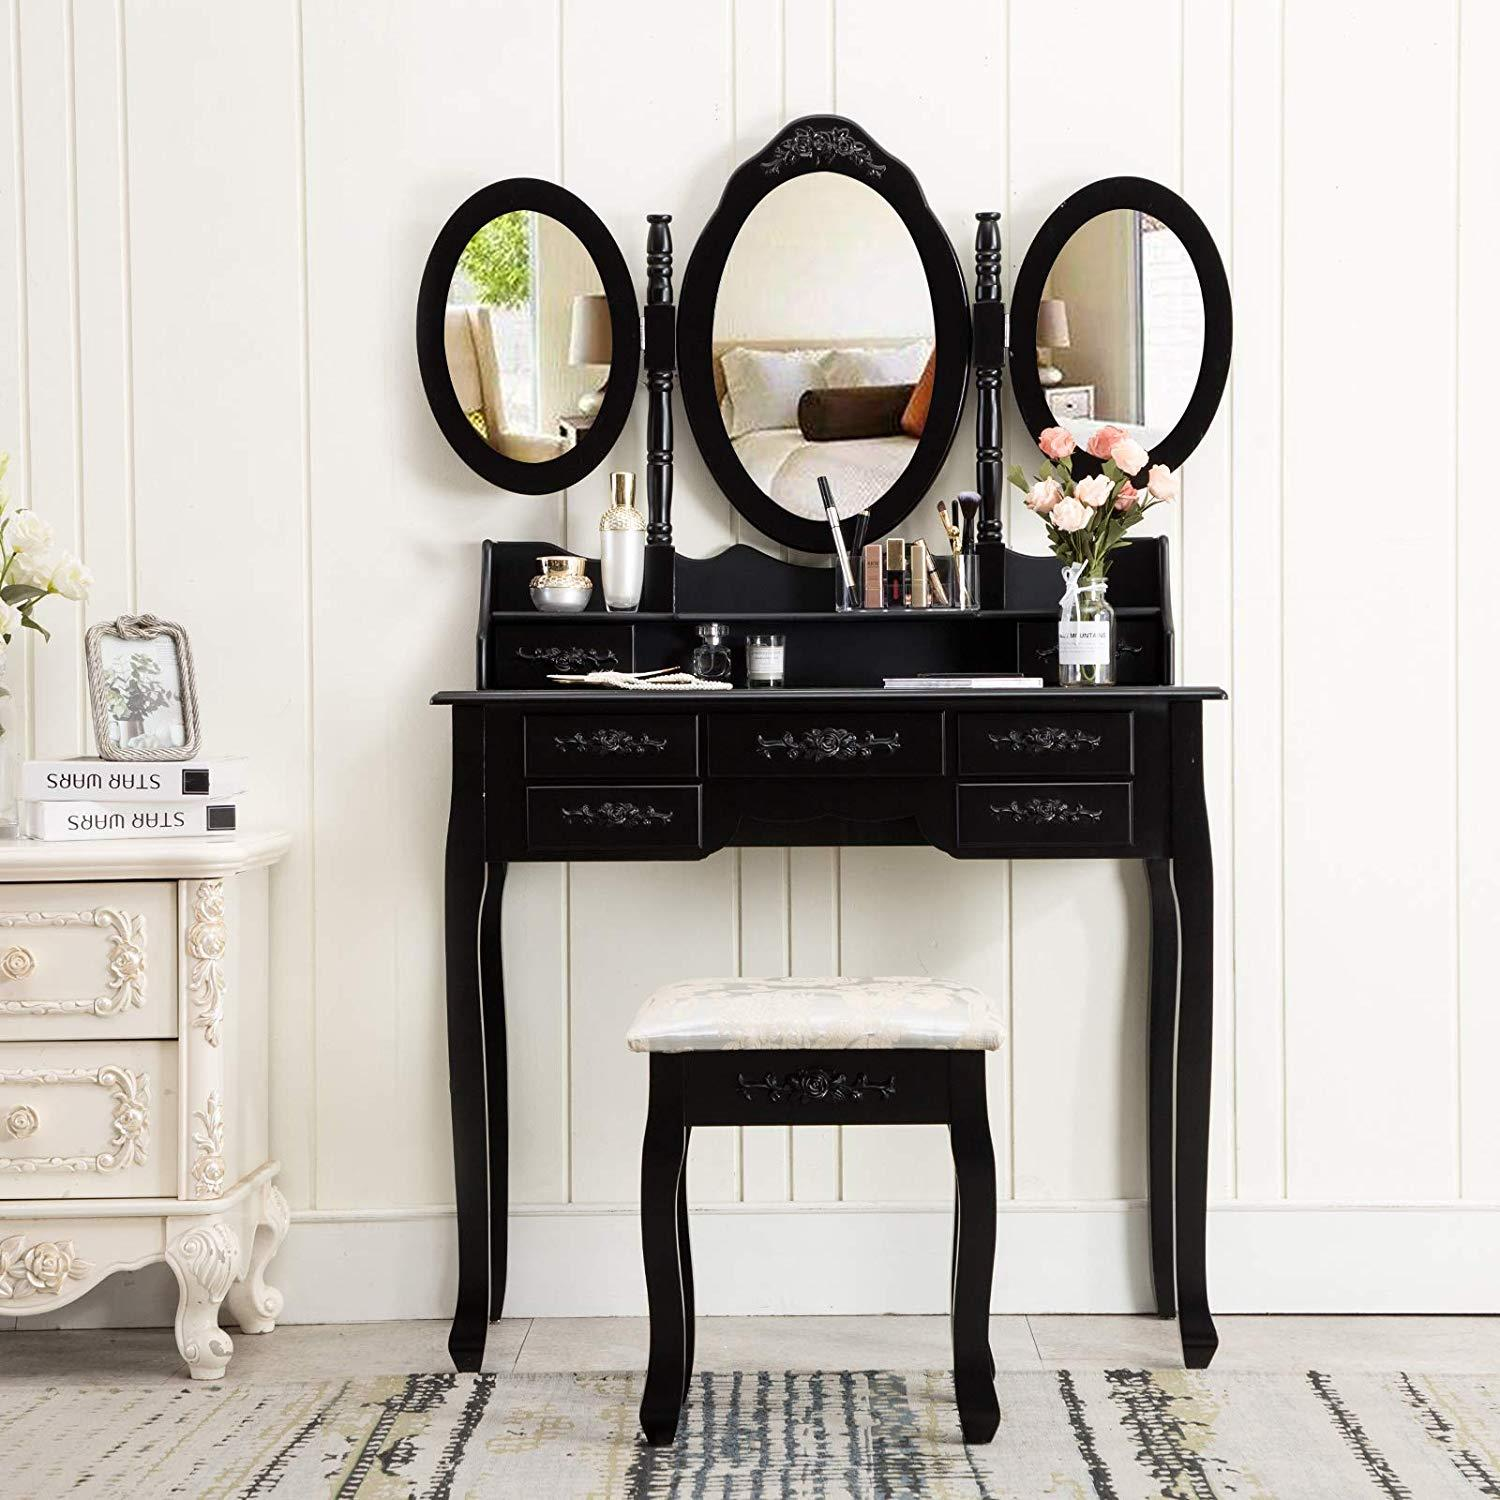 Modern Dressing Table Set with Flip-up Mirror Wood Makeup Table Vanity Console Dresser with Stool Bedroom Furniture Girls Gift Black and White